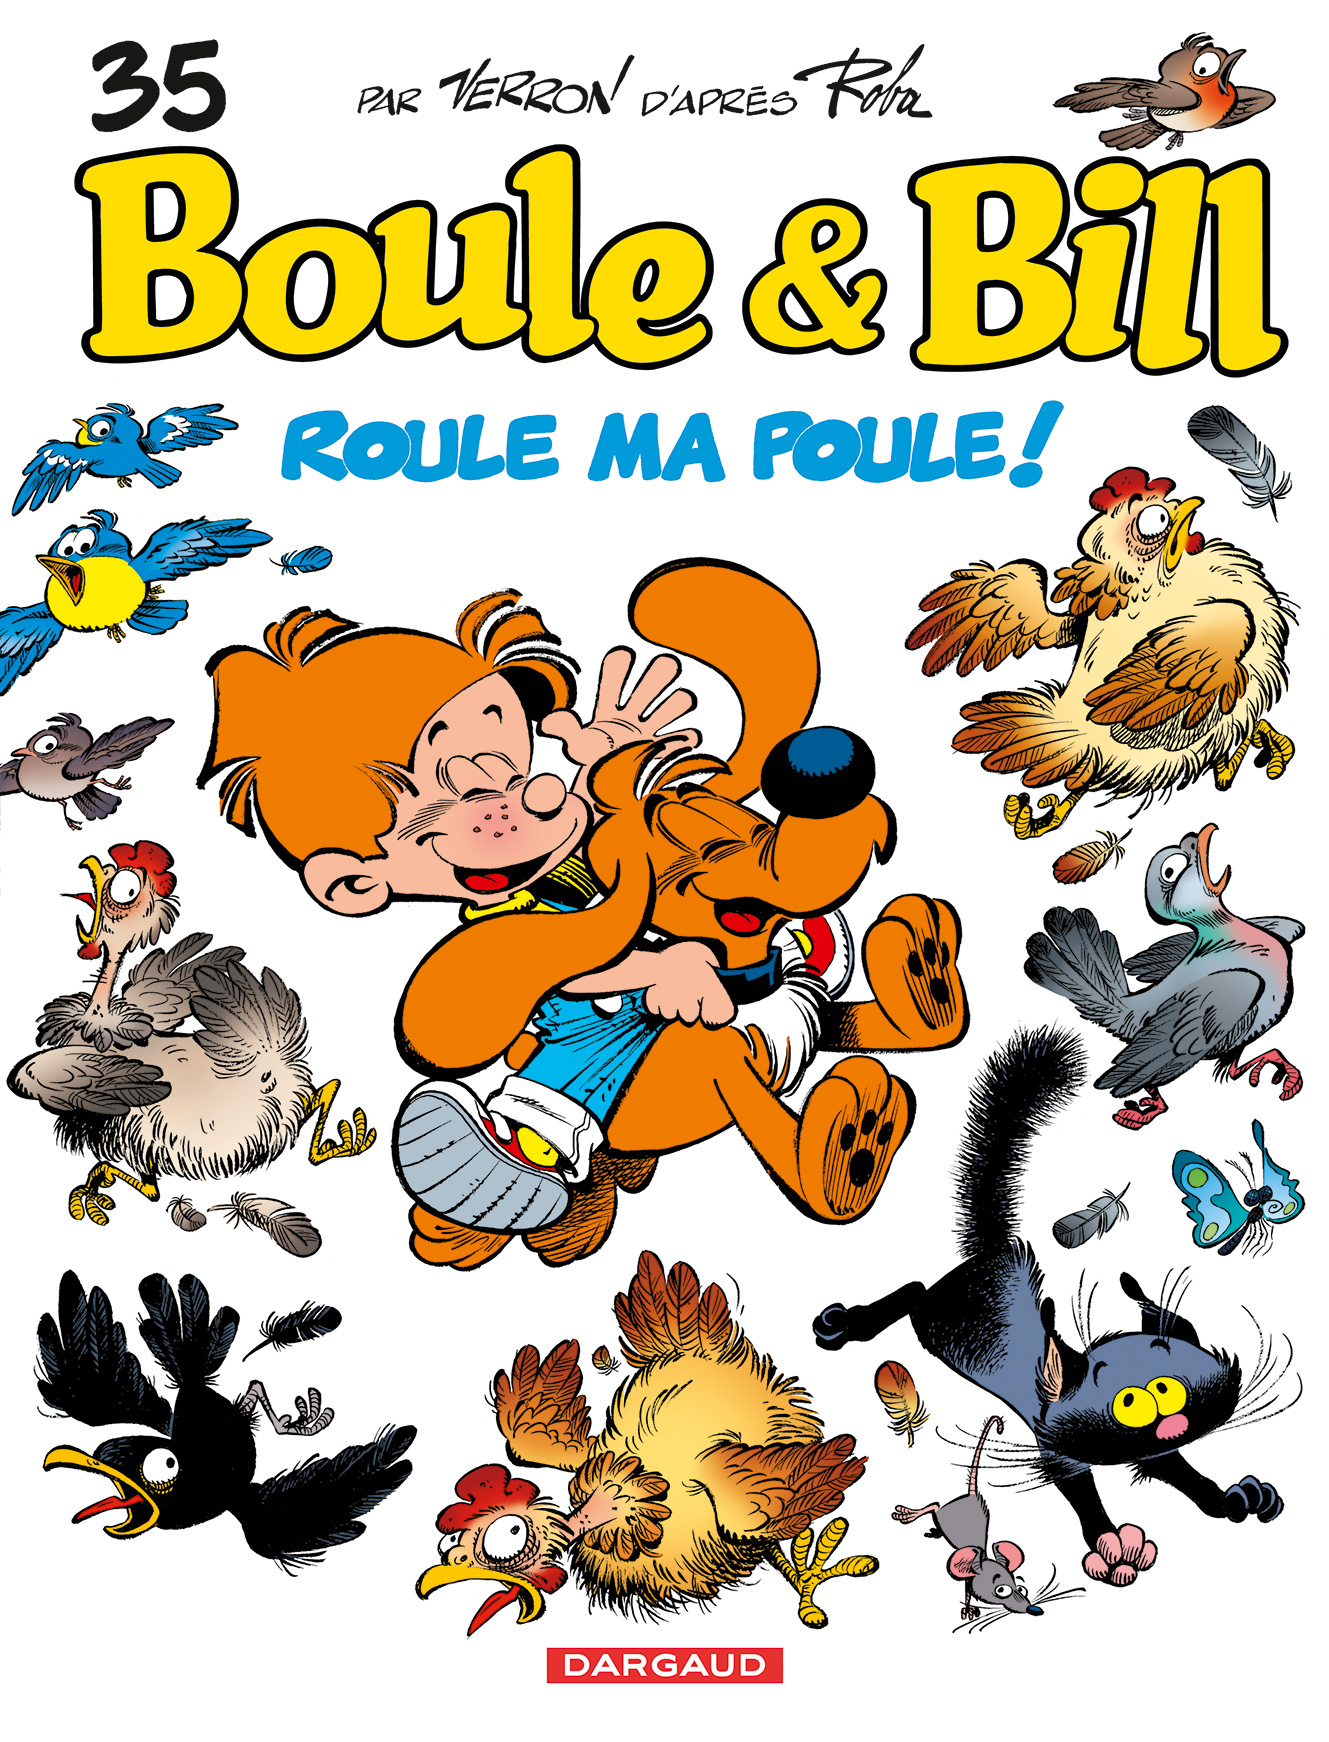 boule-et-bill-bd-volume-35-simple-2001-220434.jpg